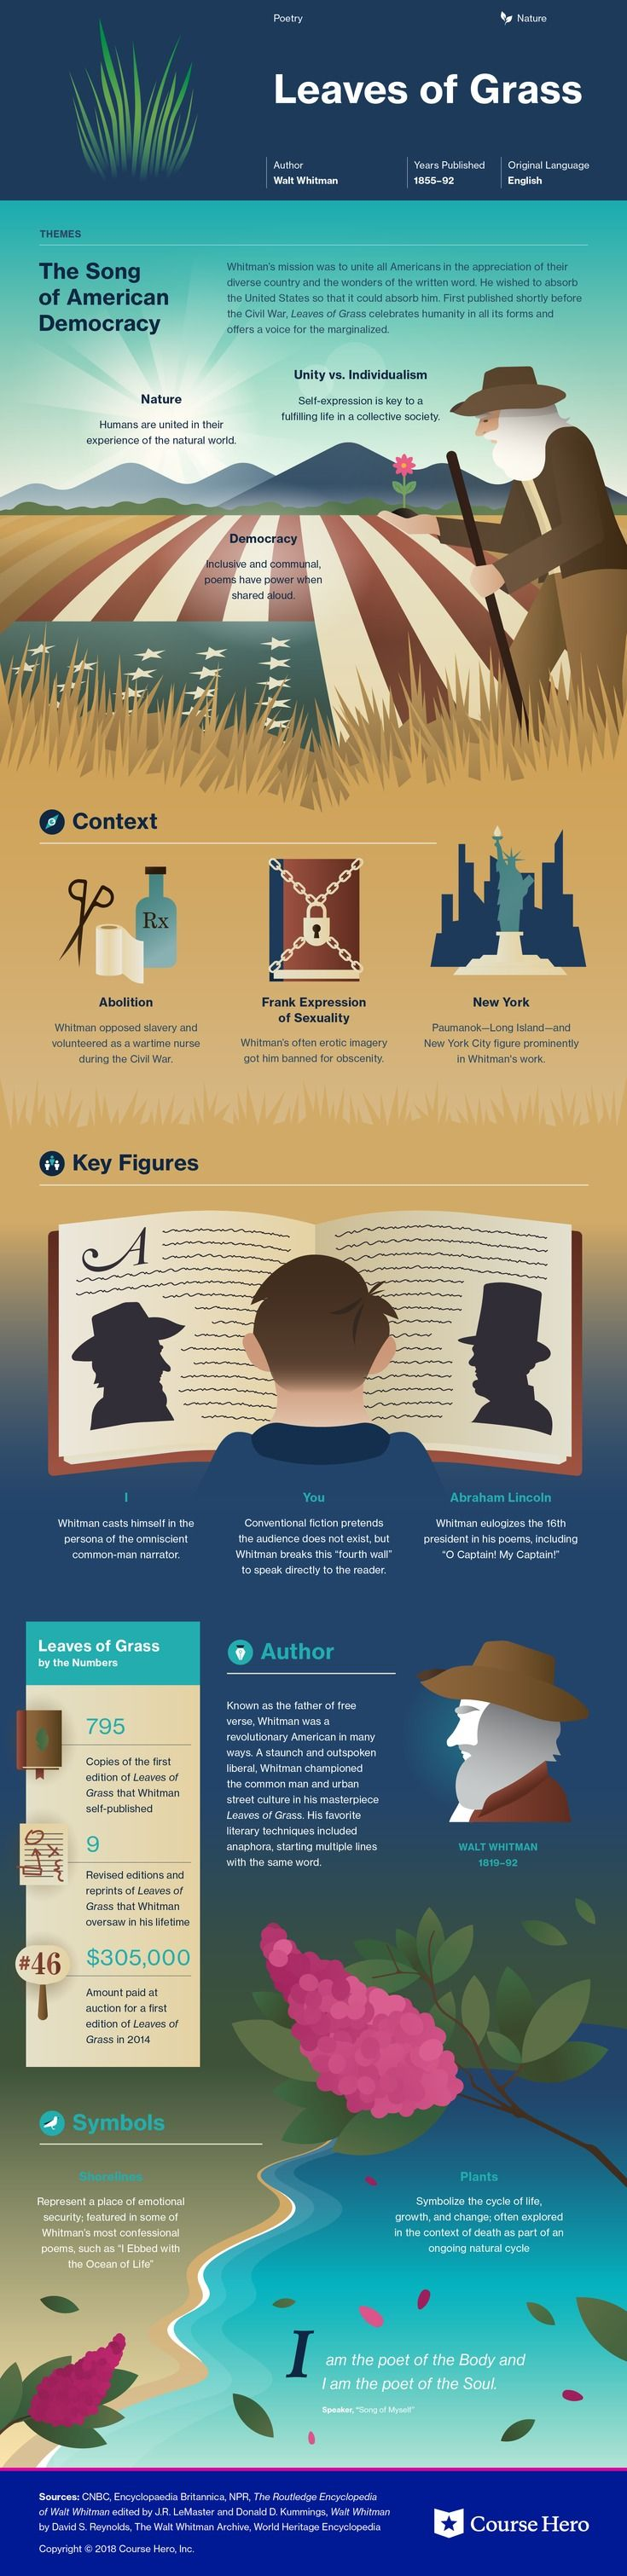 This @CourseHero infographic on Leaves of Grass is both visually stunning and informative!